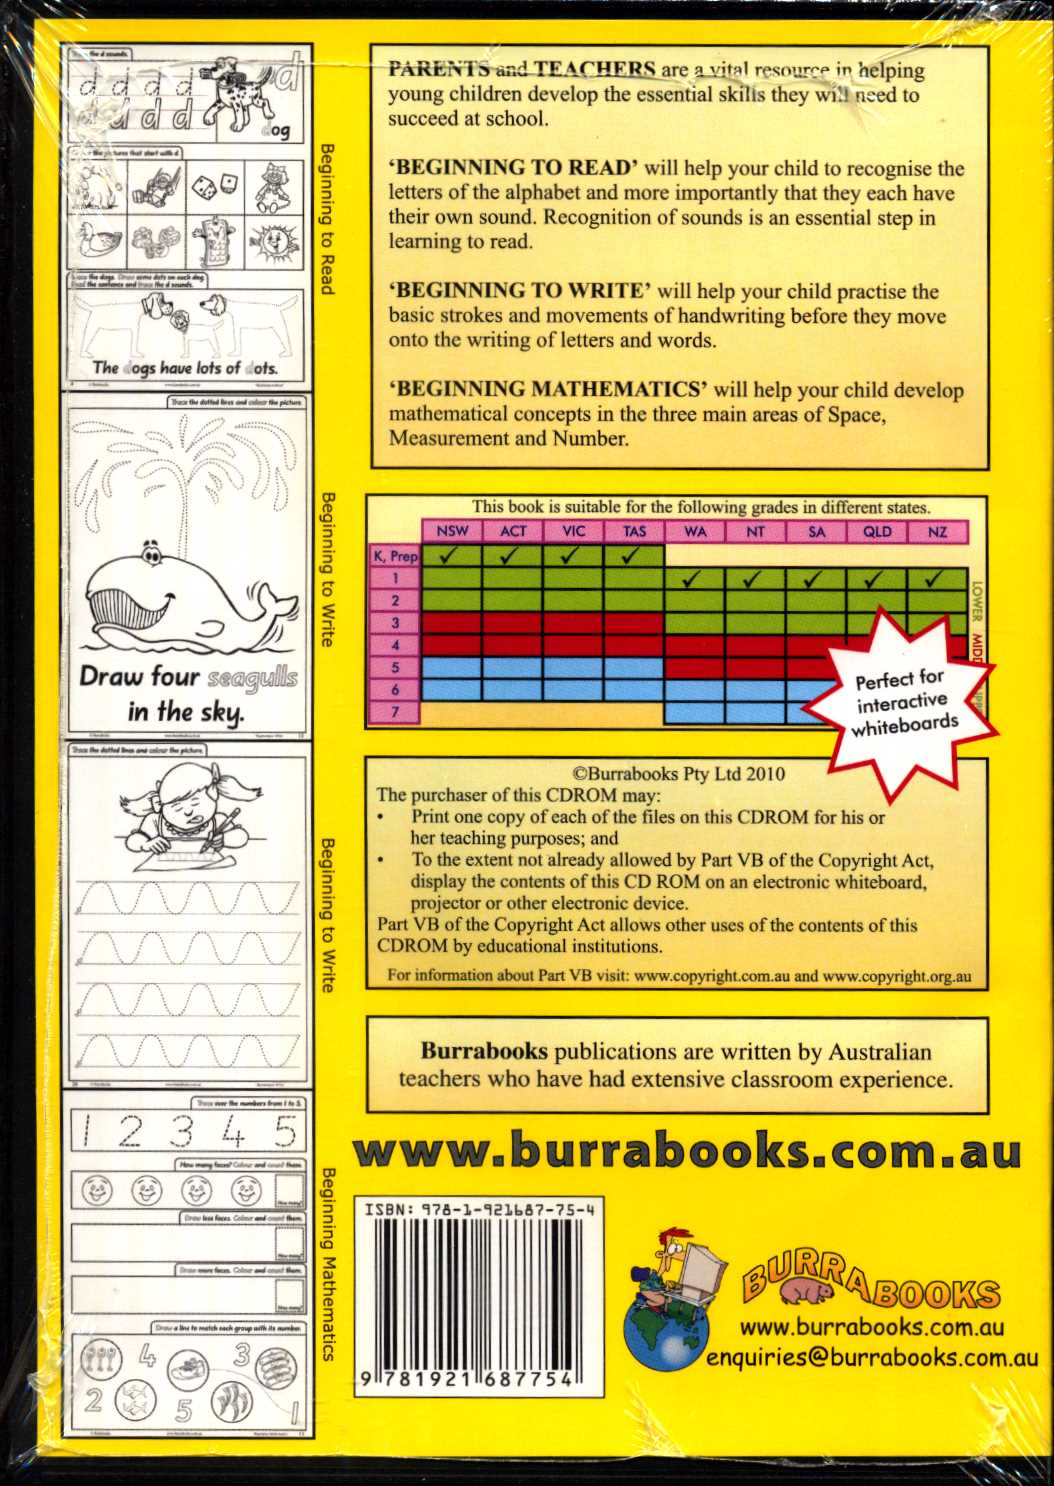 Beginning to Read, Write and Mathematics - Book on CD